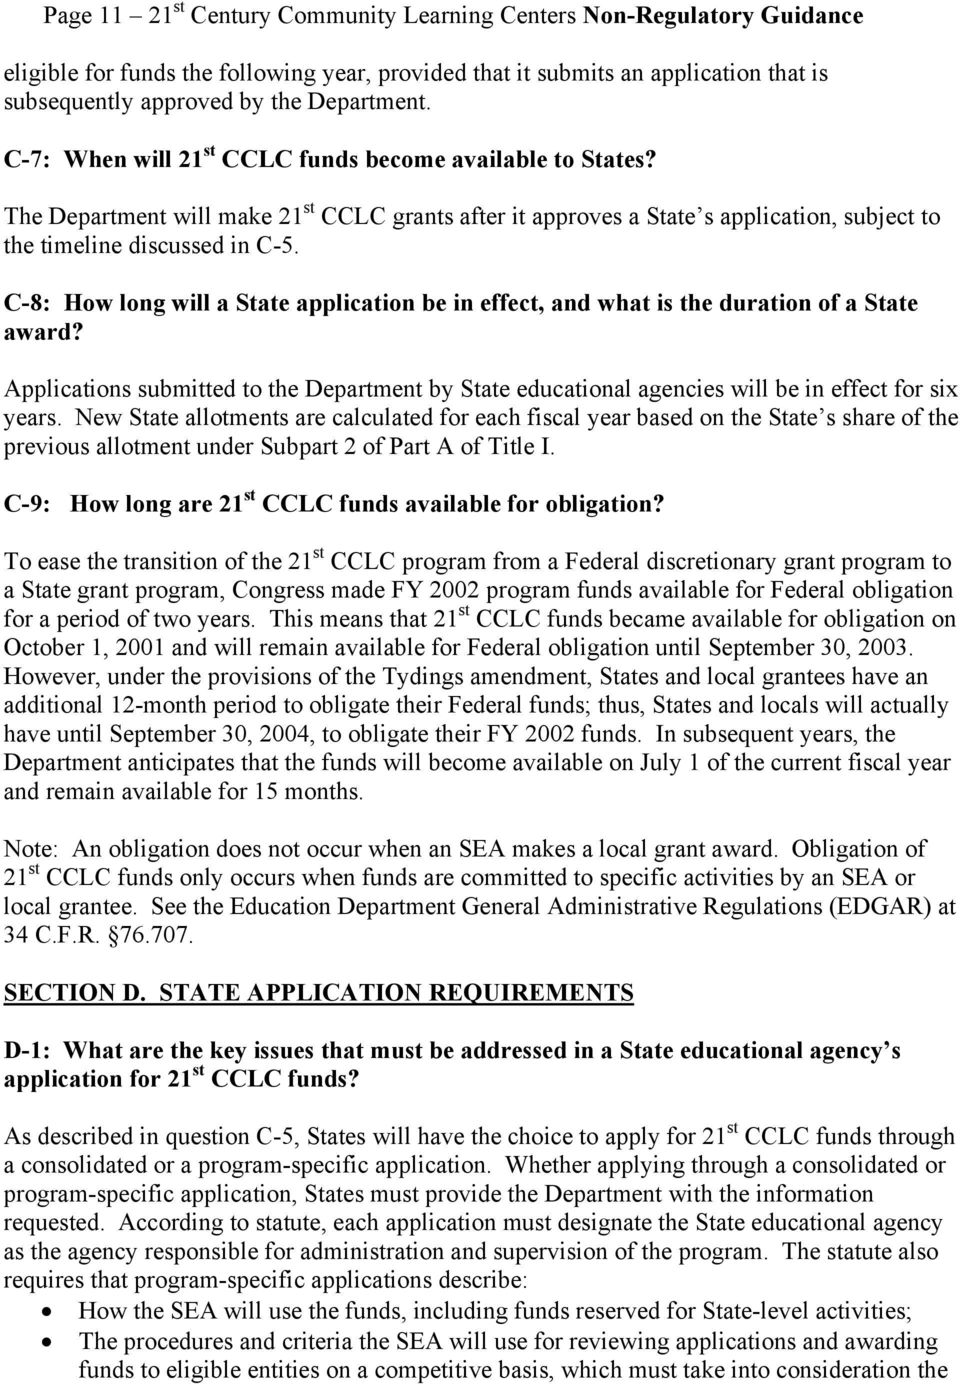 C-8: How long will a State application be in effect, and what is the duration of a State award? Applications submitted to the Department by State educational agencies will be in effect for six years.